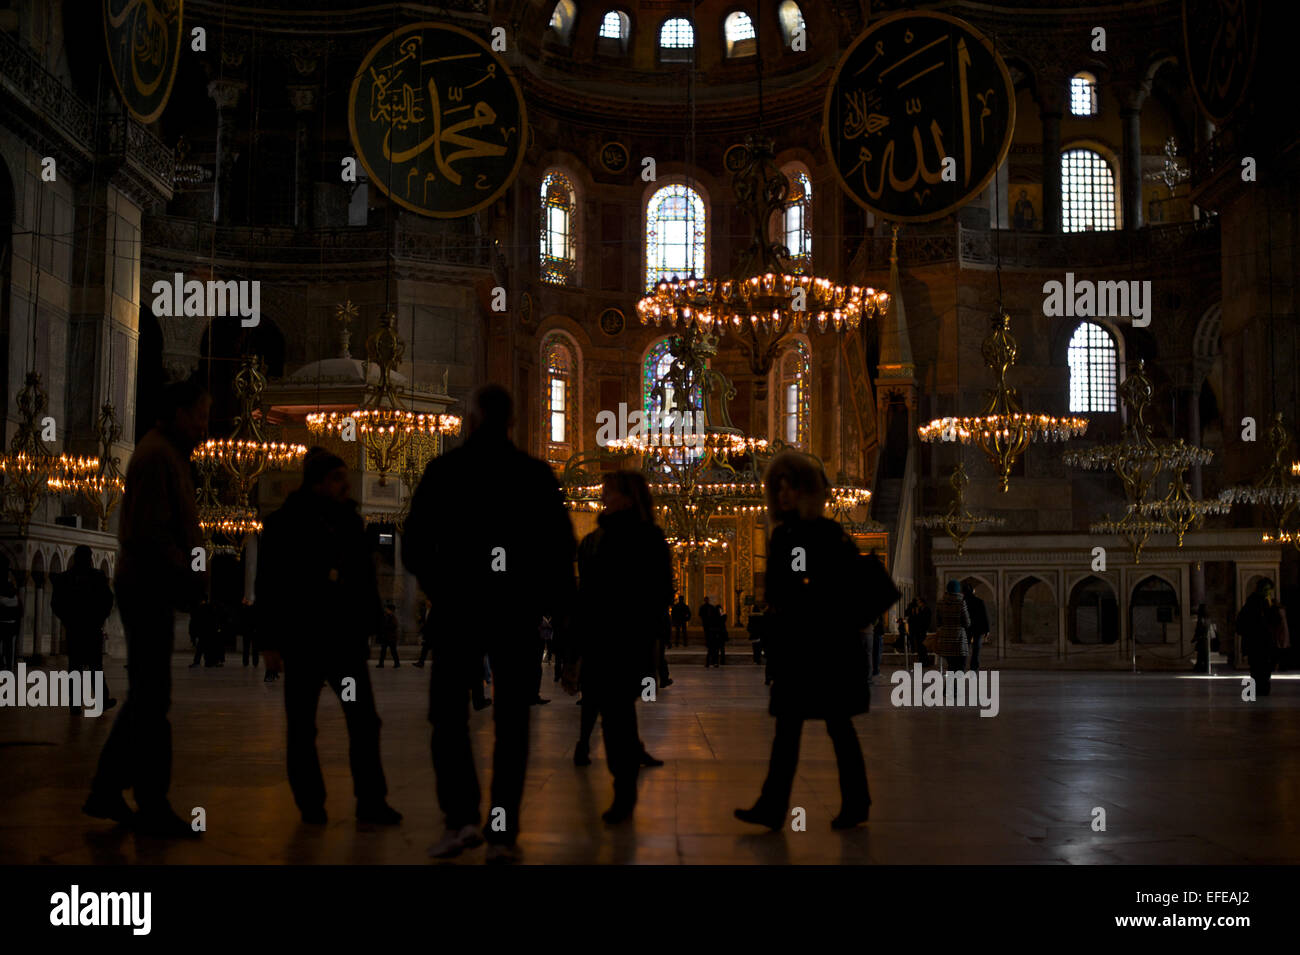 The inside of the Hagia Sofia (aka Aya Sofya) is pictured as part of a photo essay on winter breaks in Istanbul, - Stock Image